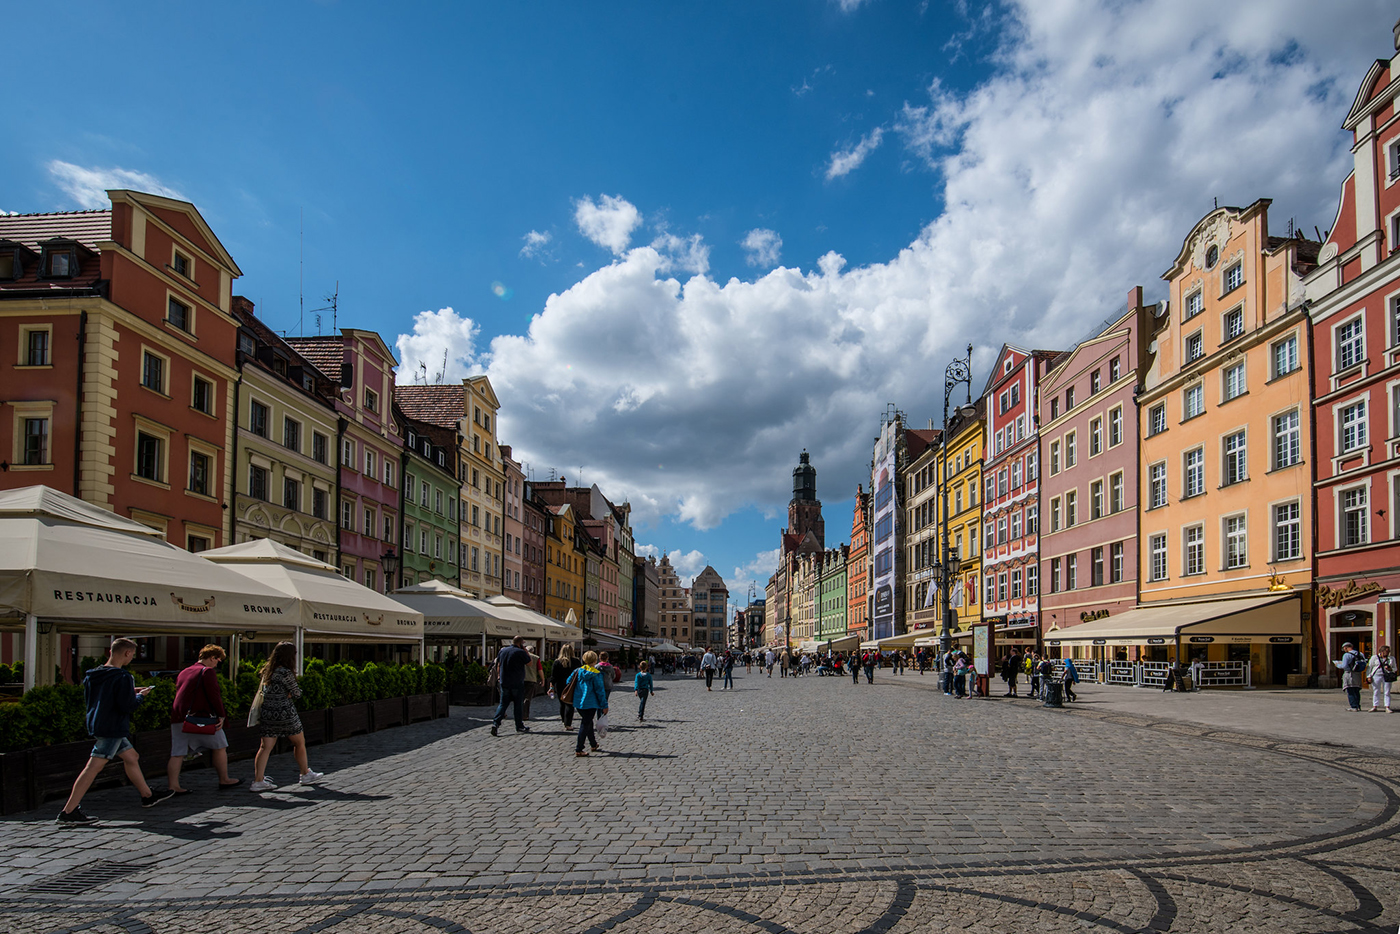 Market Square in Wroclaw